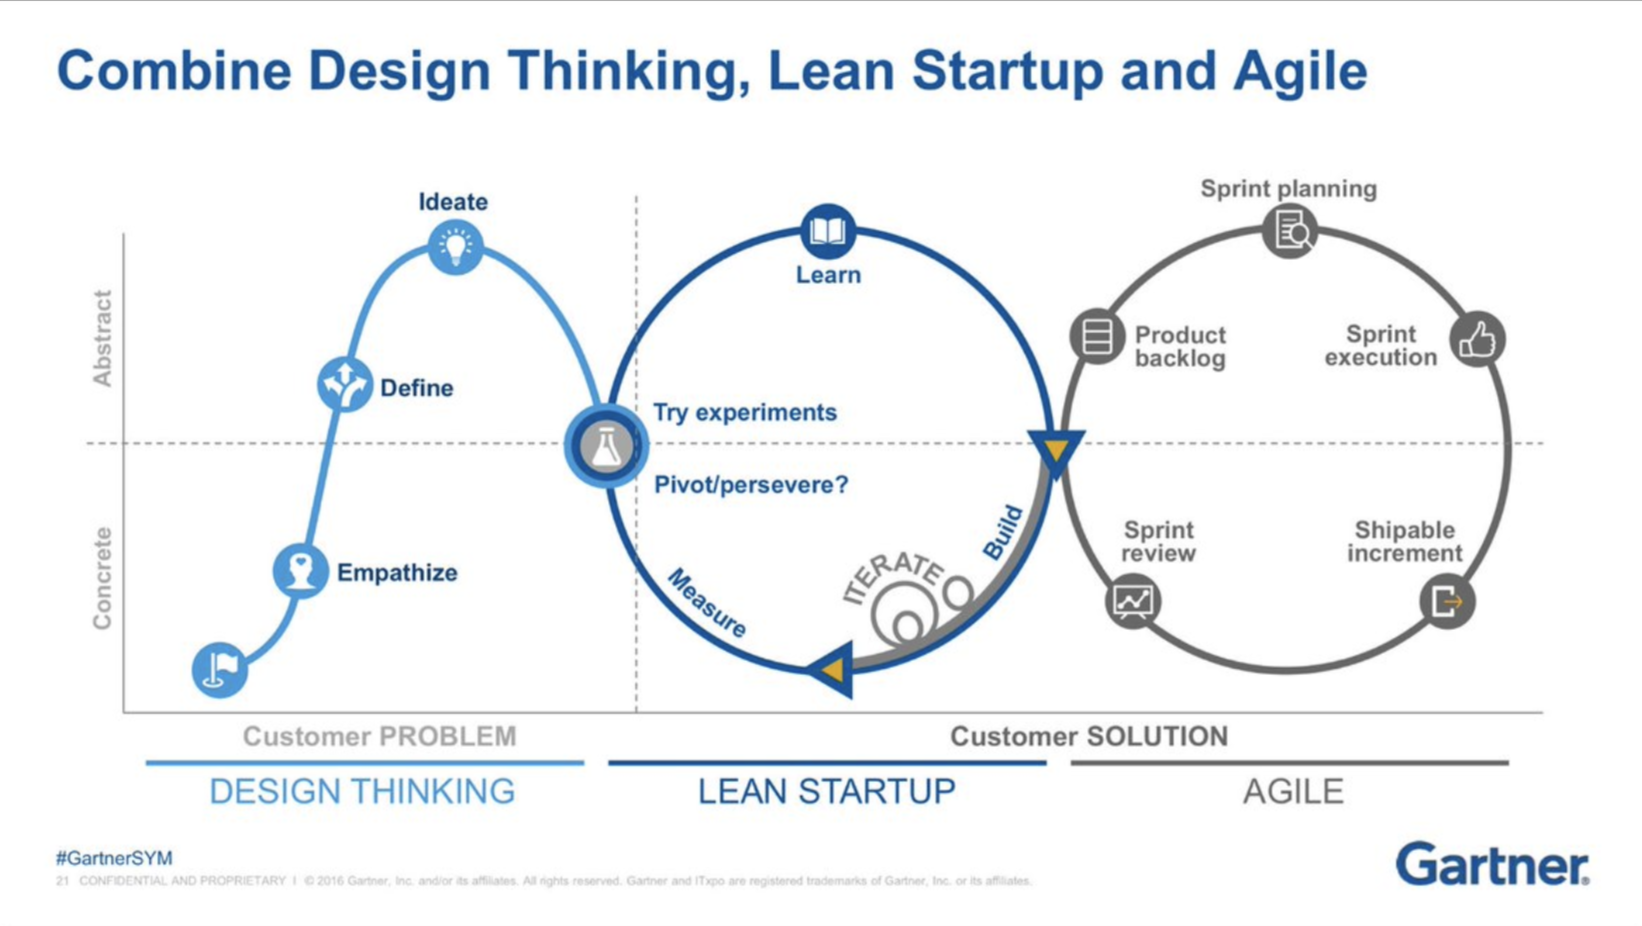 An example of a Dual Track Agile Product Process. Credit: Gartner